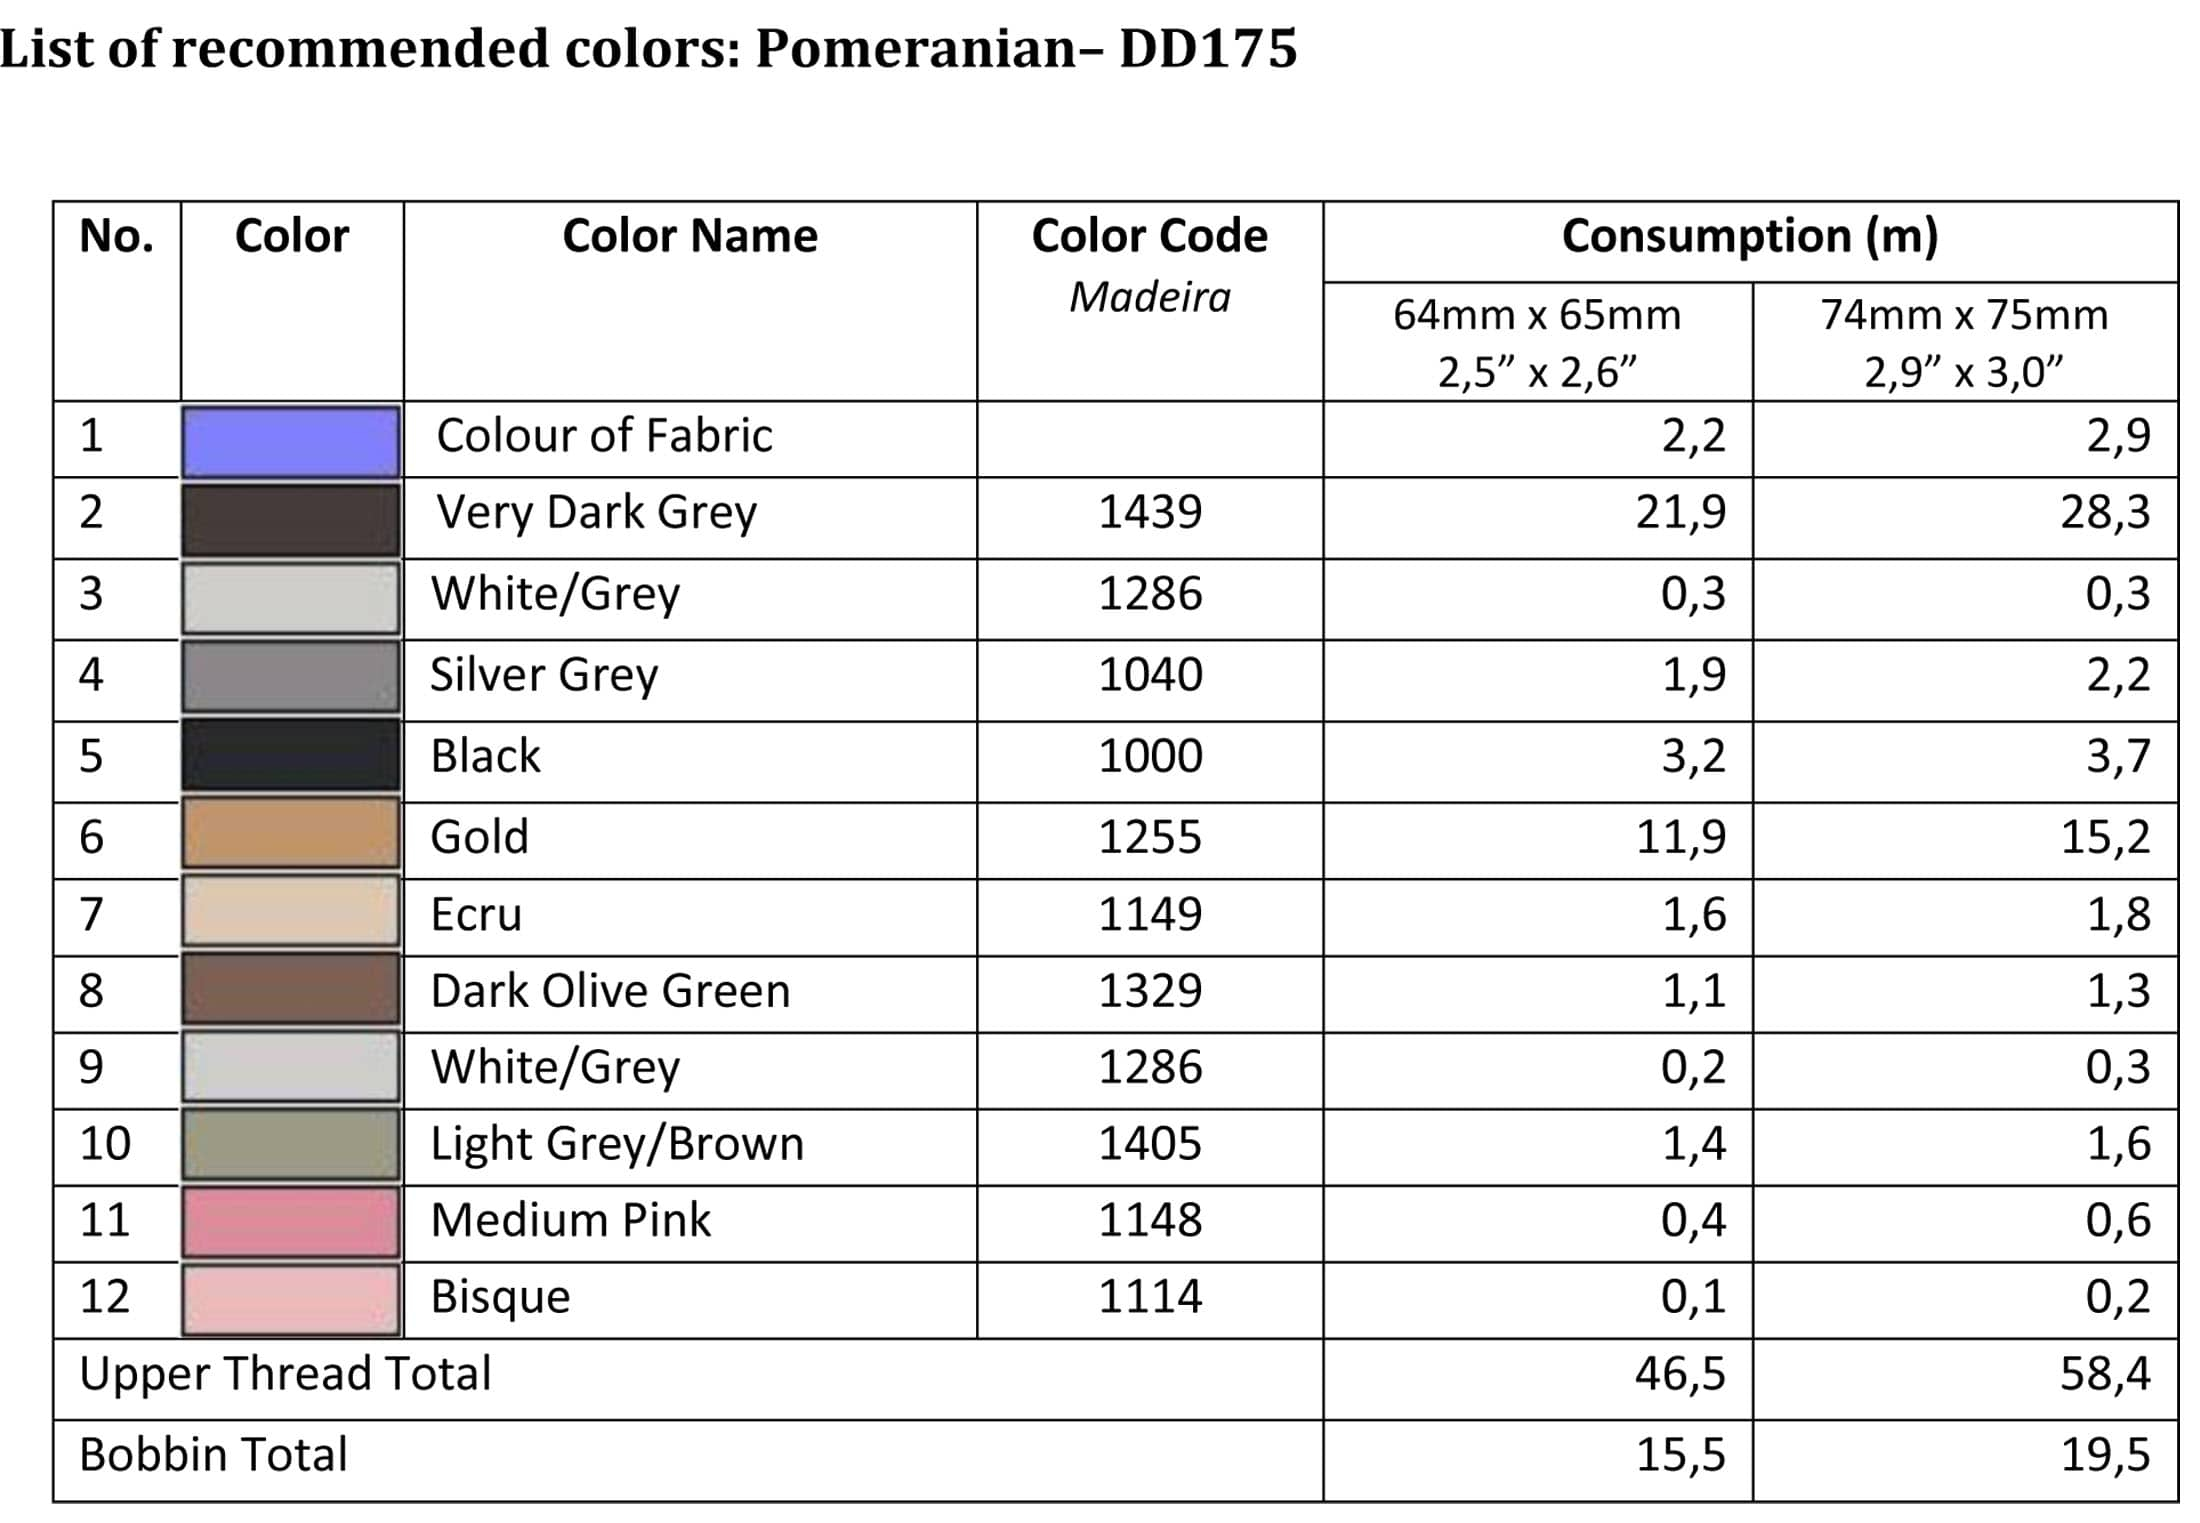 List of recommended colors - DD175